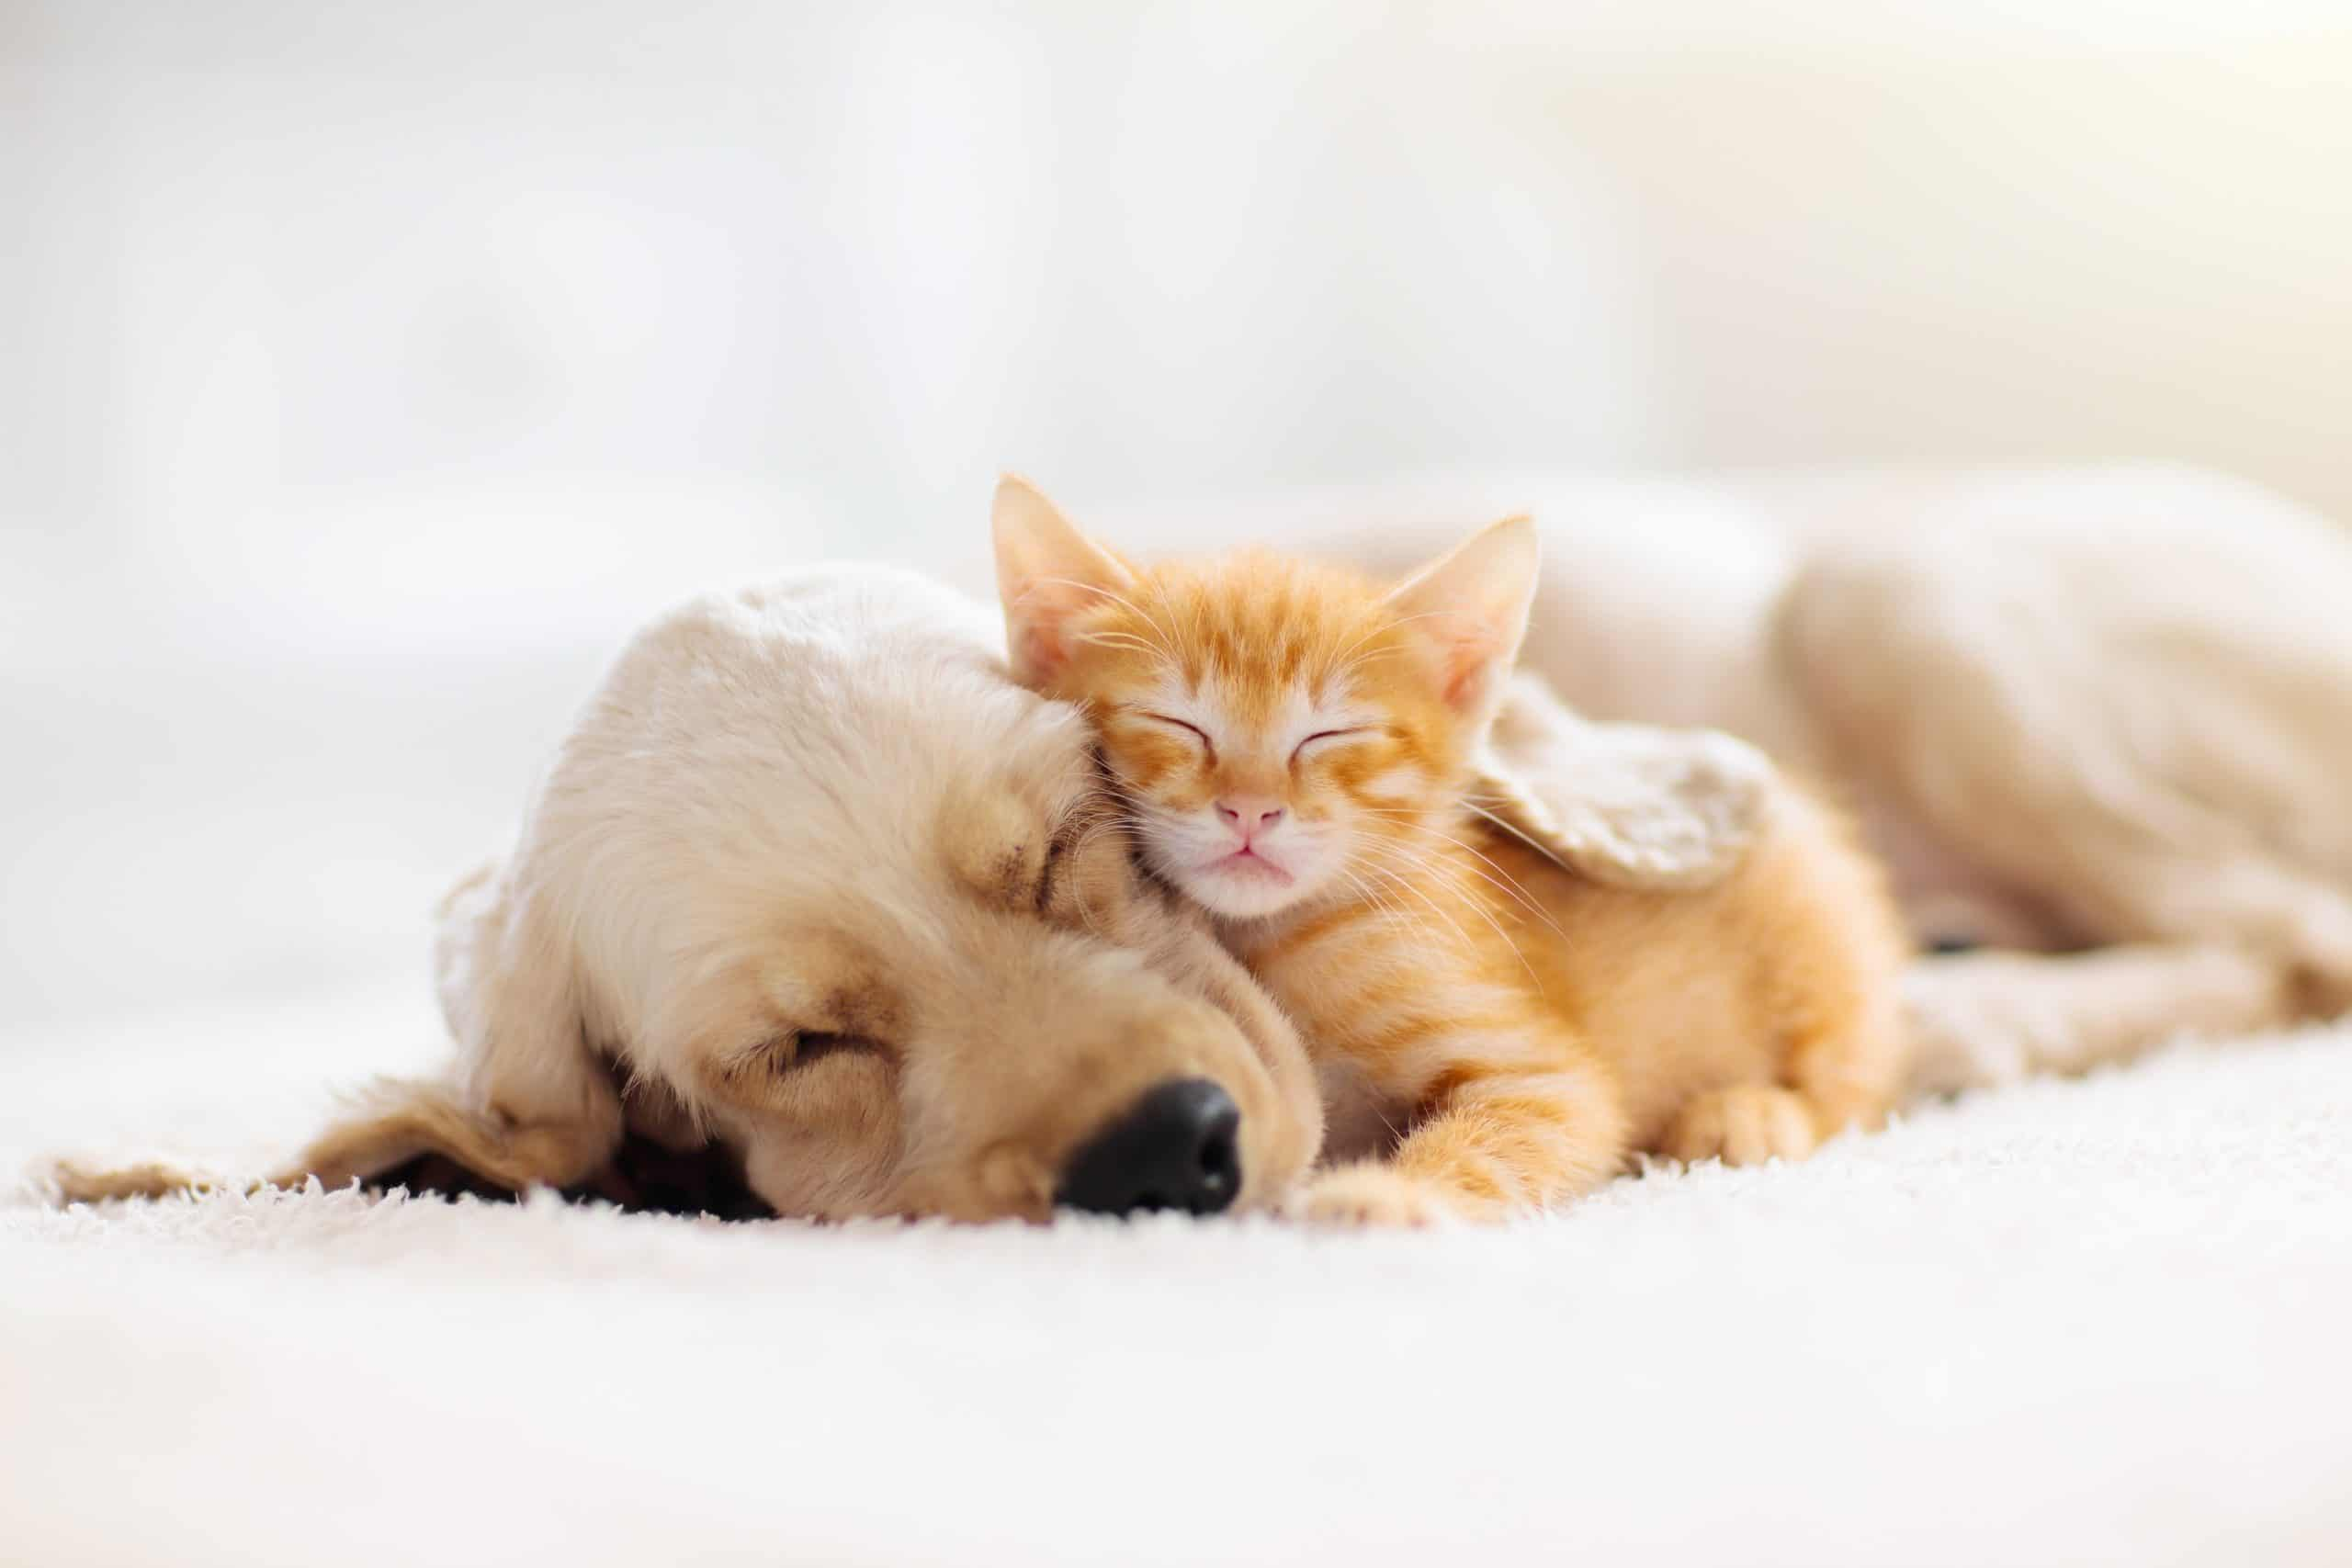 Cocker spaniel puppy and kitten snuggle together.